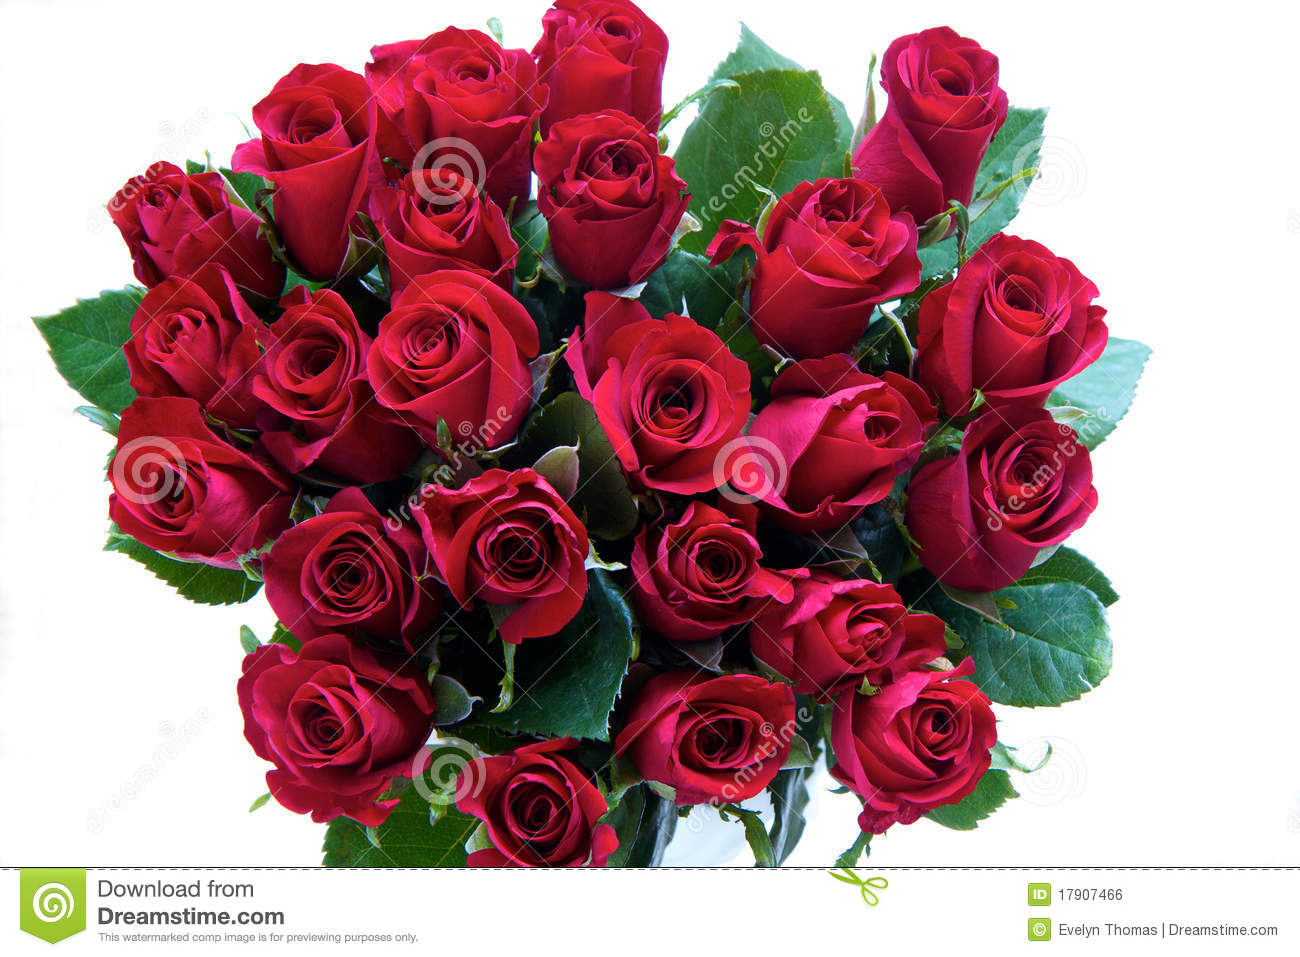 Red Roses In A Bunch Stock Photo. Image Of Flower, Festive